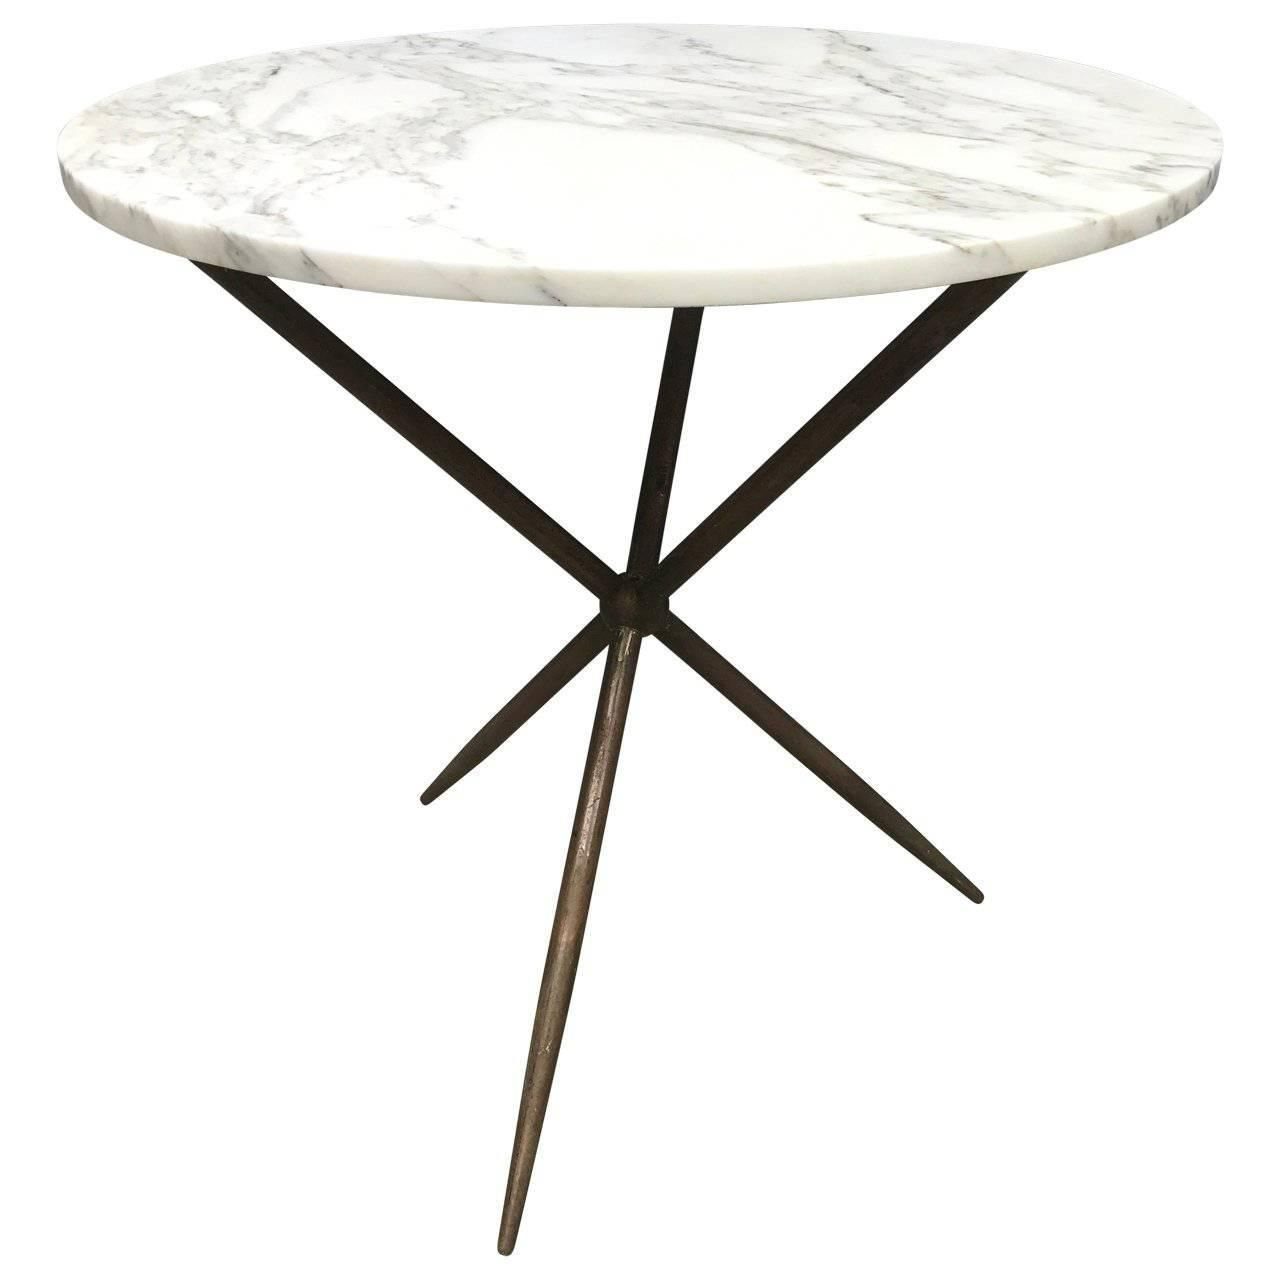 Round Bronze And Marble Top Cafe Table Cafe Tables Marble Table